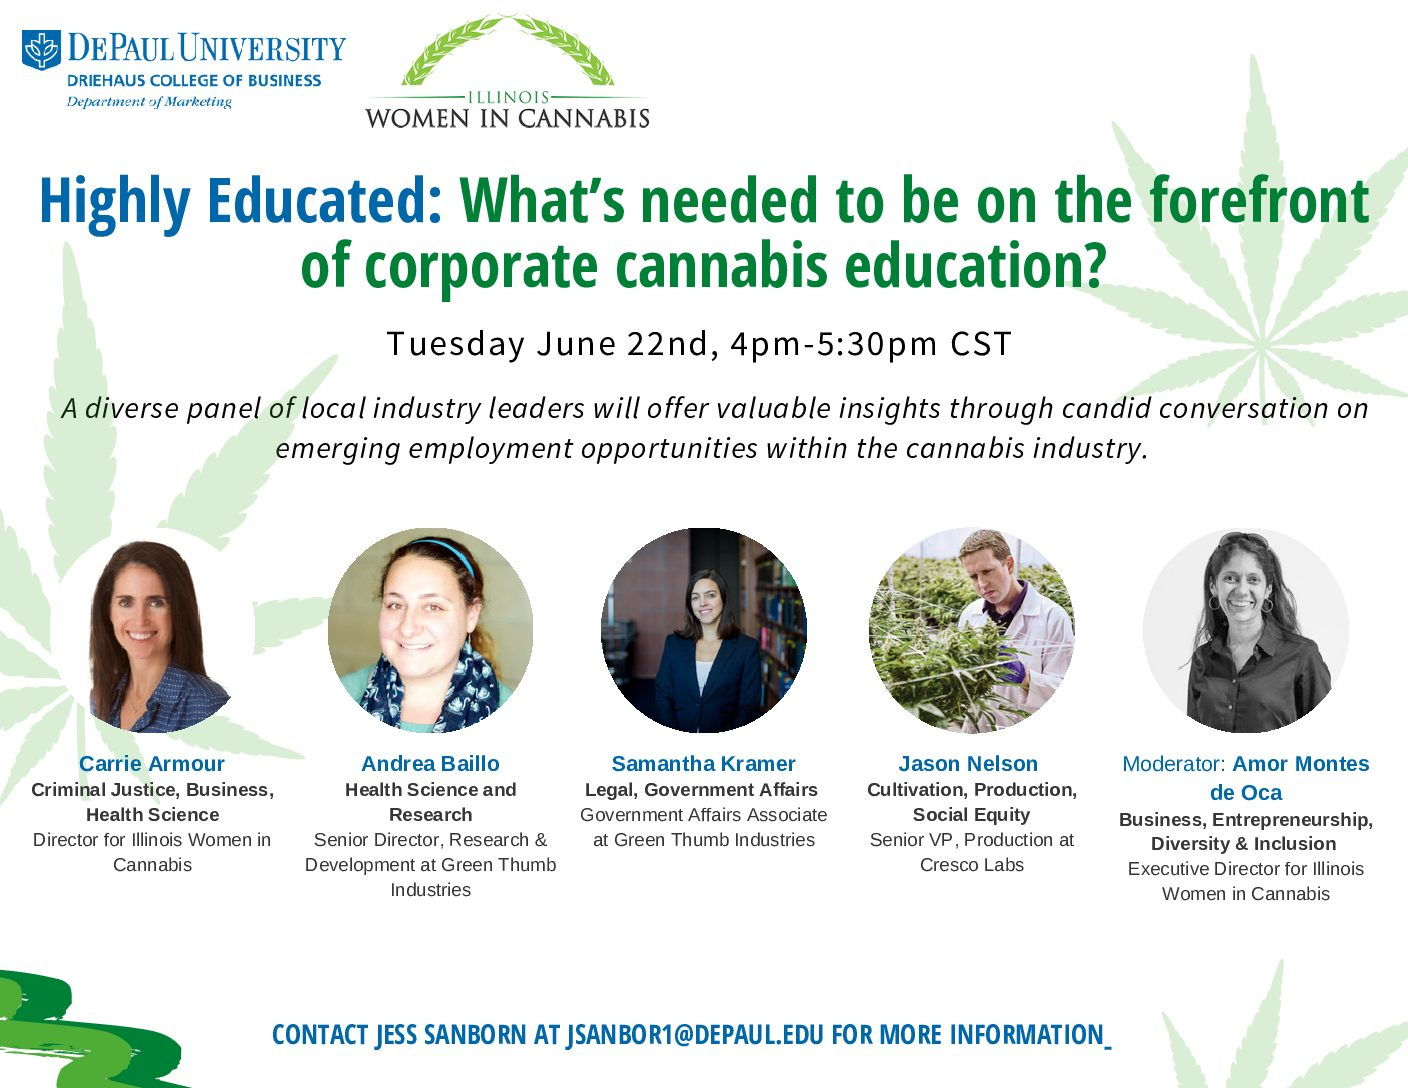 Virtual: Highly Educated: What's needed to be on the forefront of corporate cannabis education?